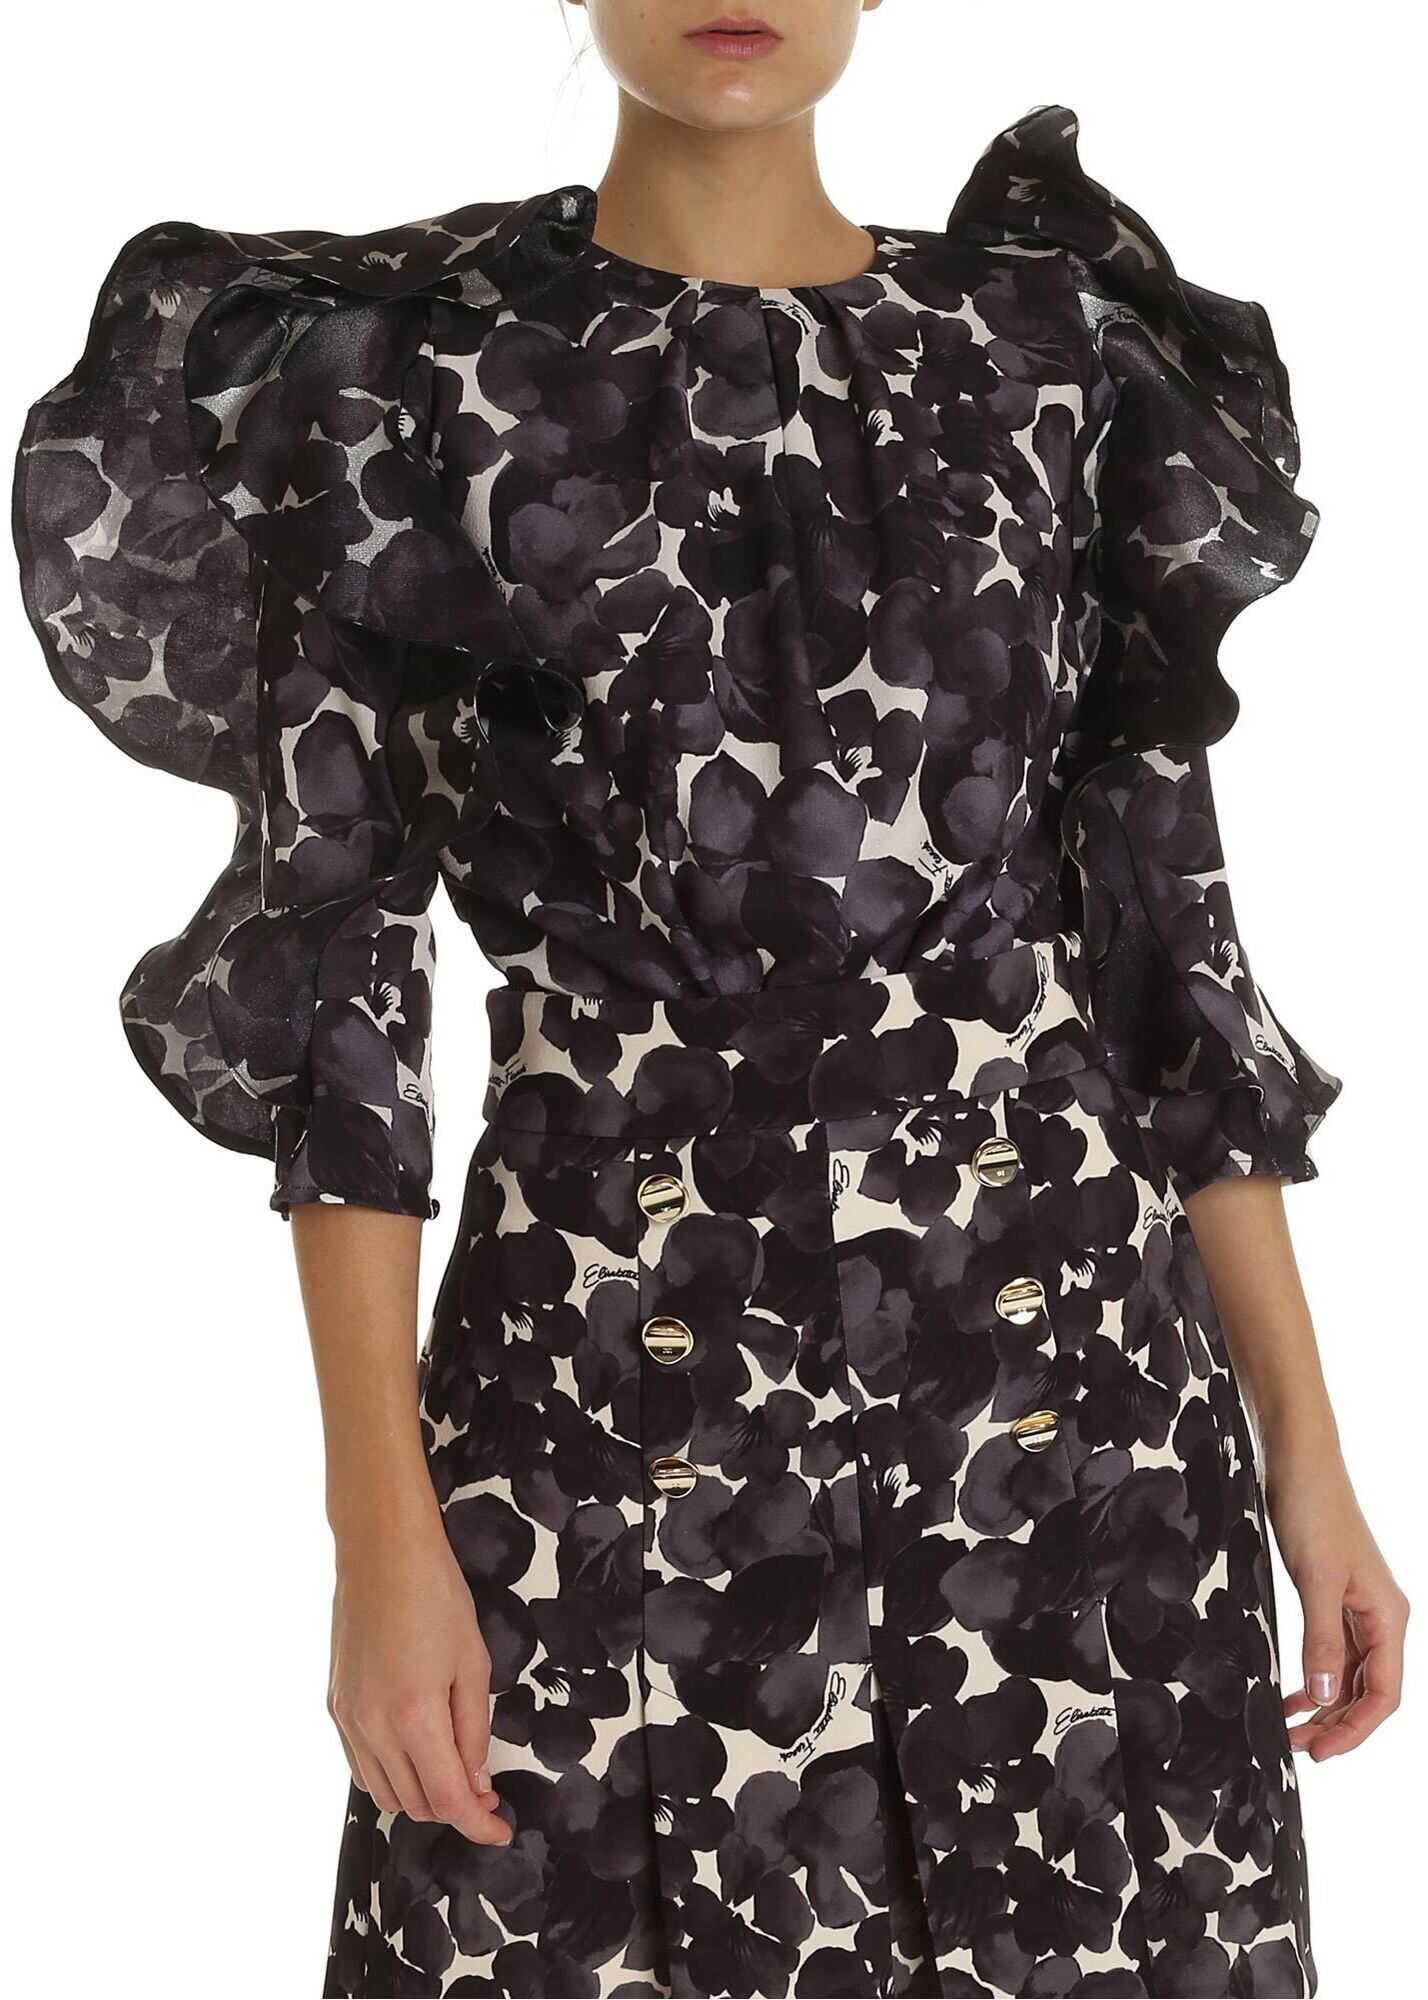 Elisabetta Franchi Floral Print Body With Ruffles In Nude Color* Black